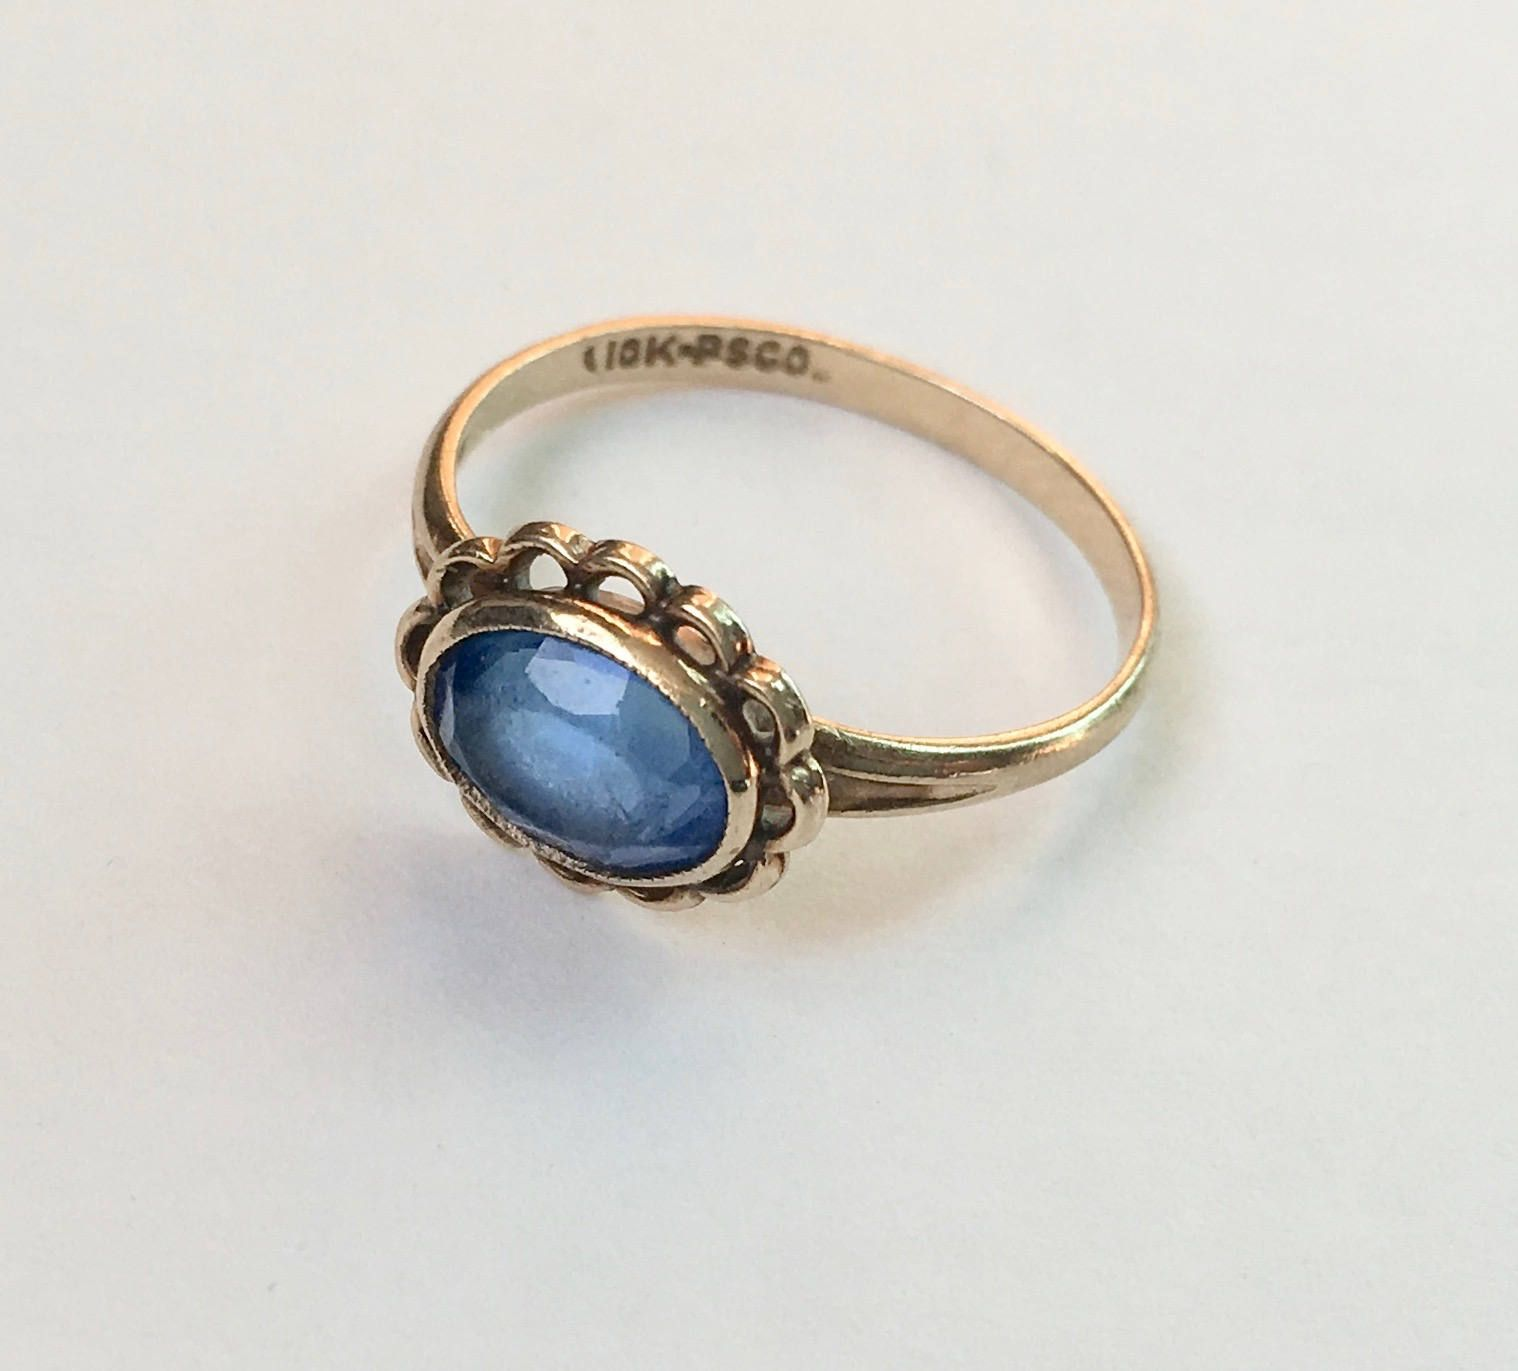 Vintage 10k Gold And Blue Stone Ring Size 6 25 Etsy Wide Band Diamond Rings Blue Stone Ring White Diamond Rings Engagement